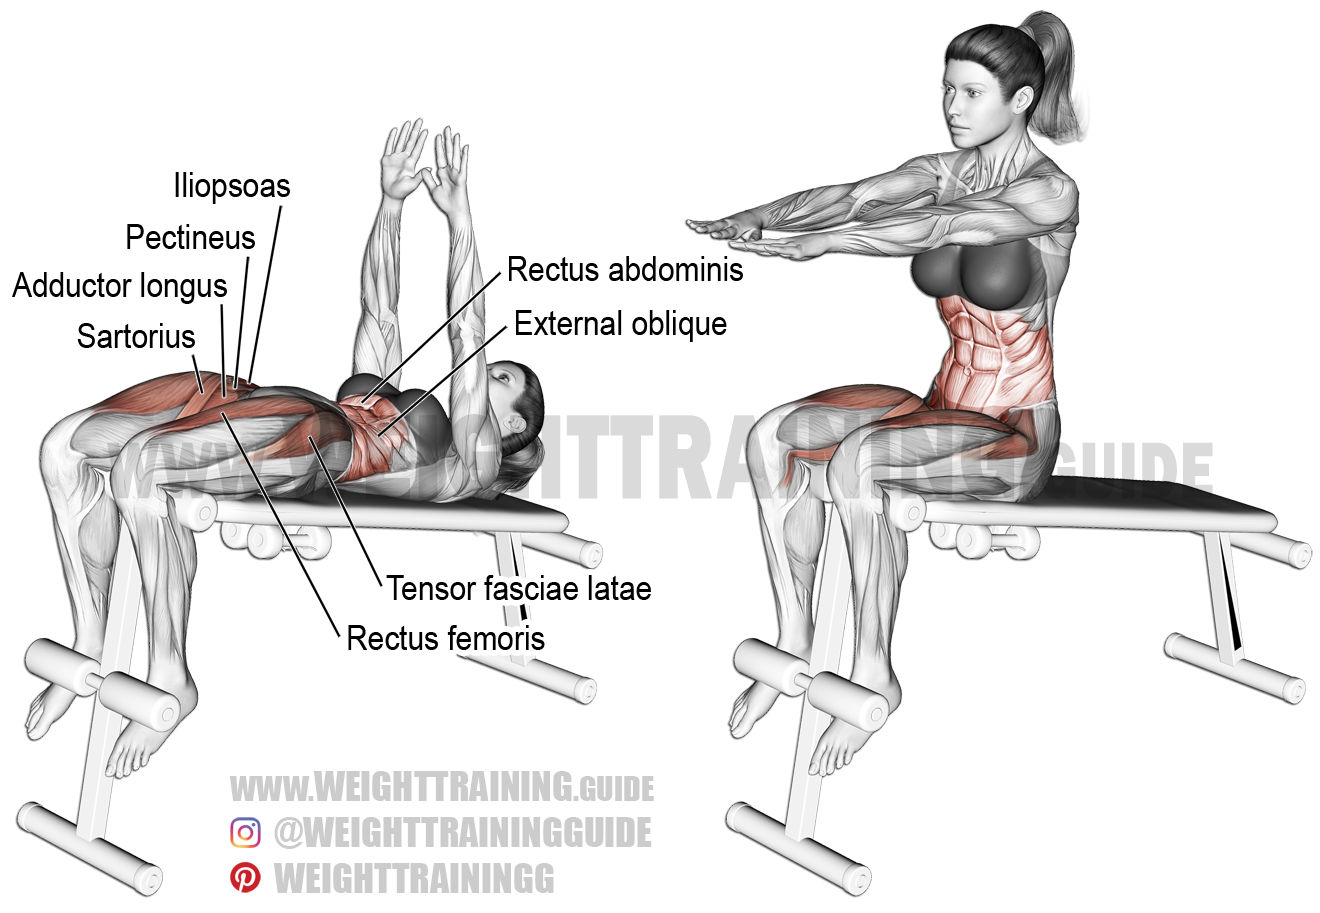 Decline Sit Up Exercise Instructions And Video Weight